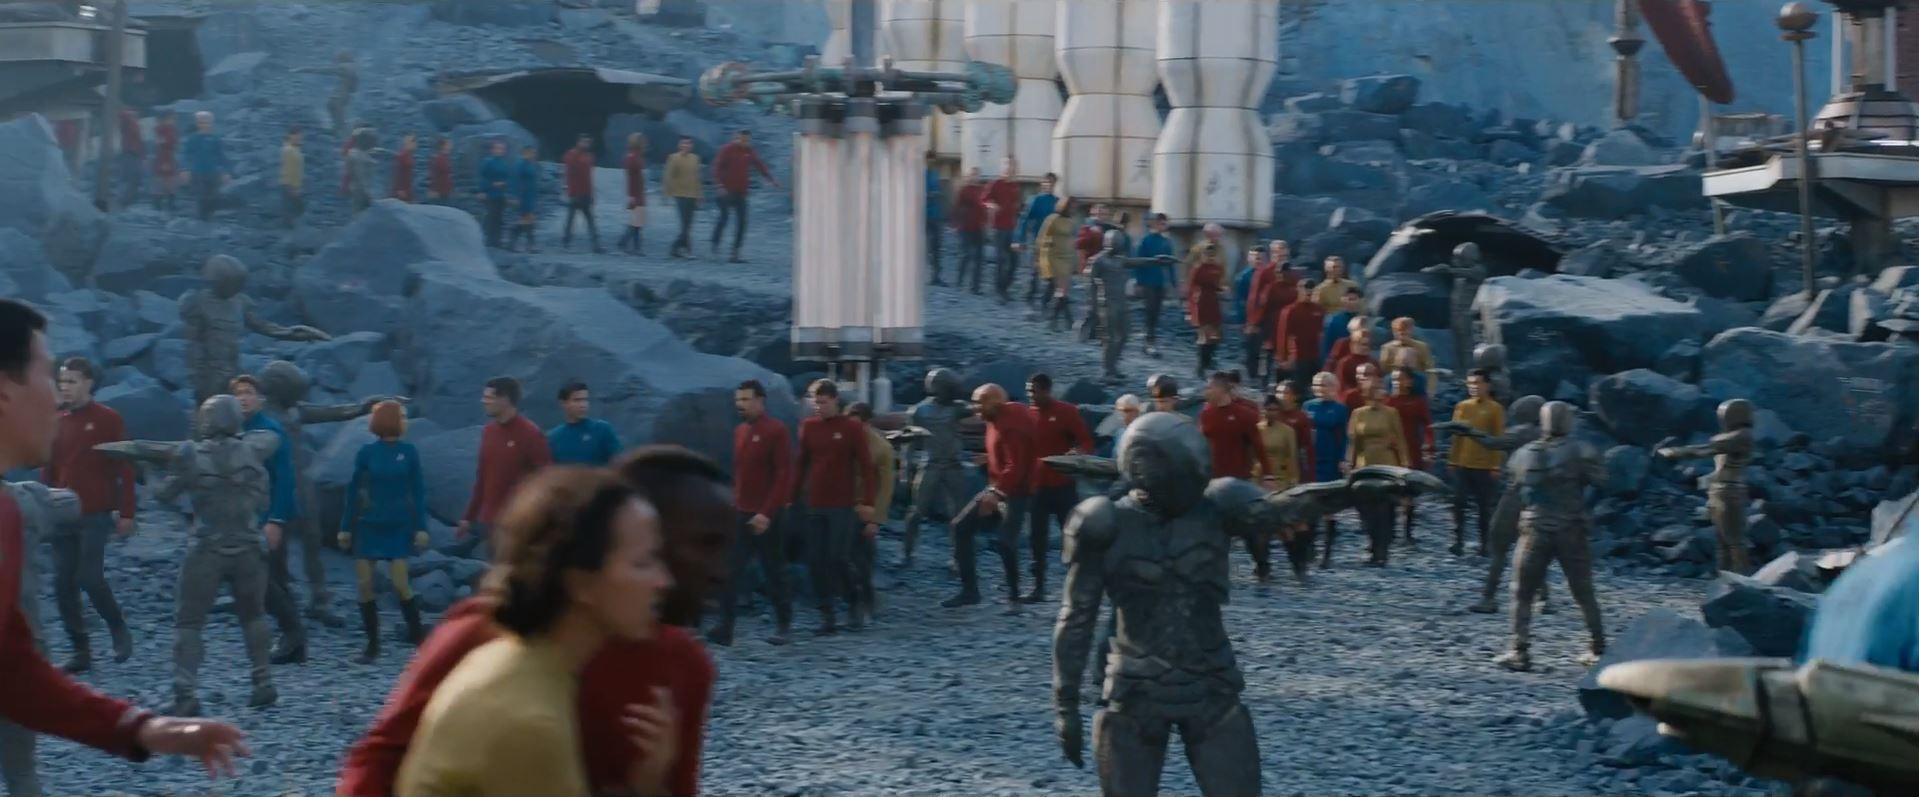 Starfleet prisoners - First trailer for Star Trek Beyond